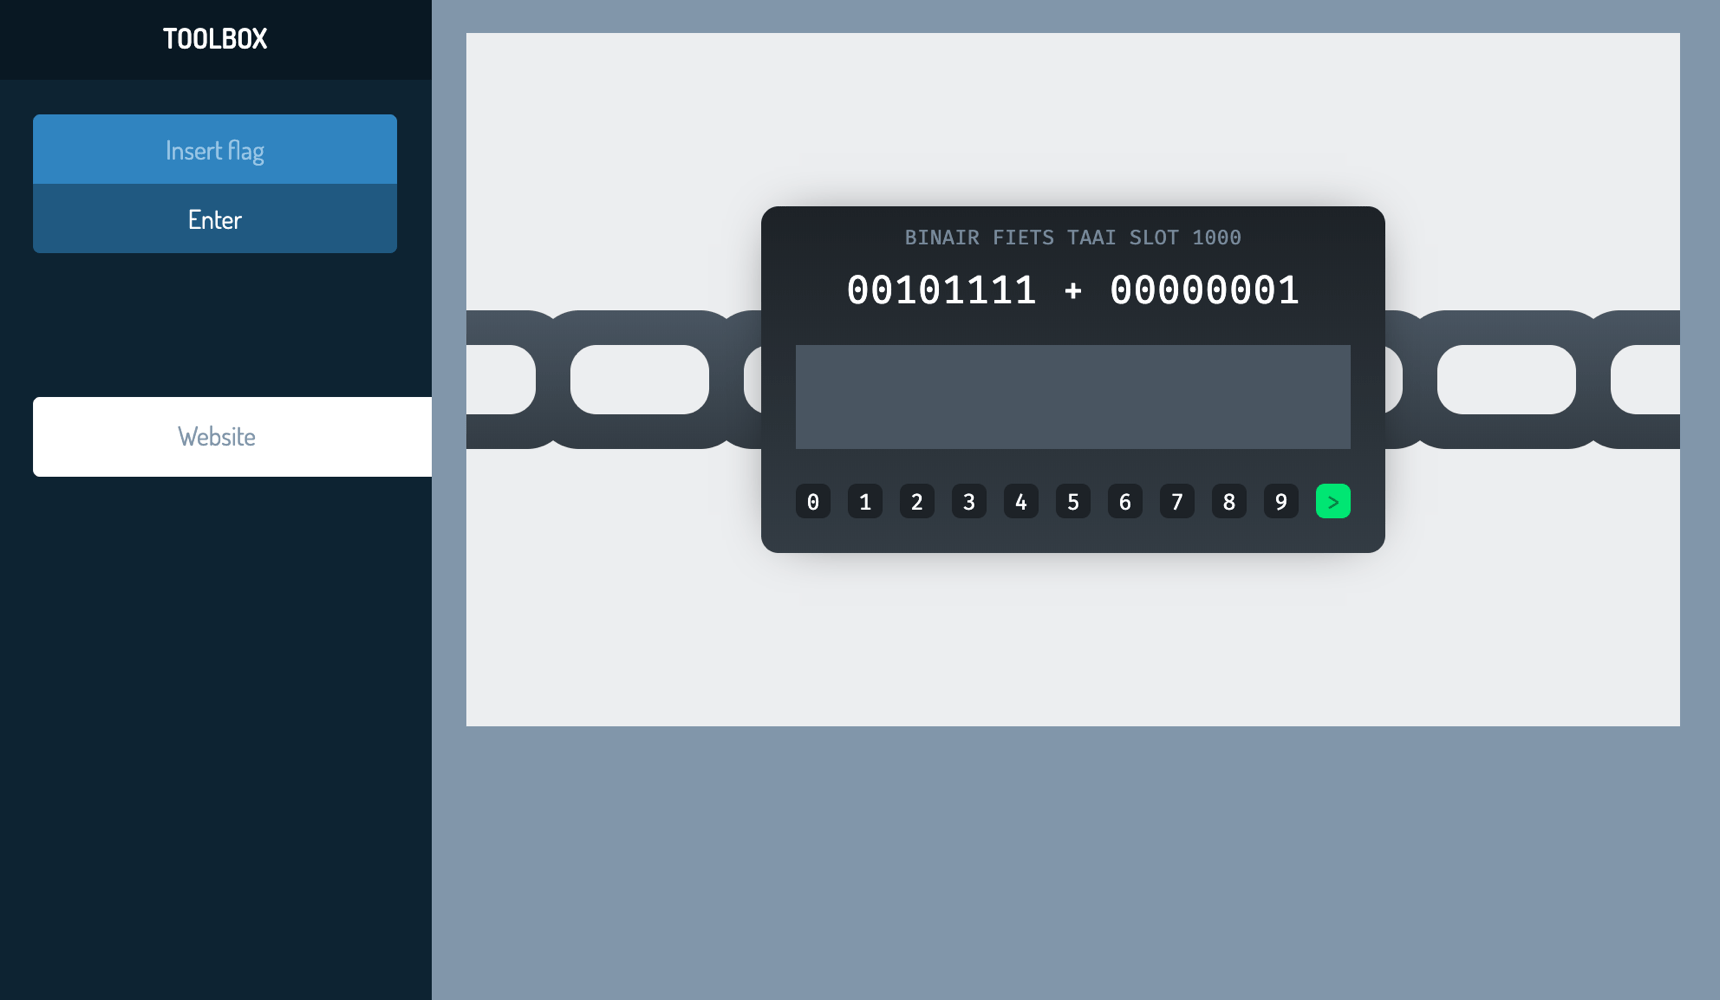 Example of a CyberStart challenge with a binary lock and chain